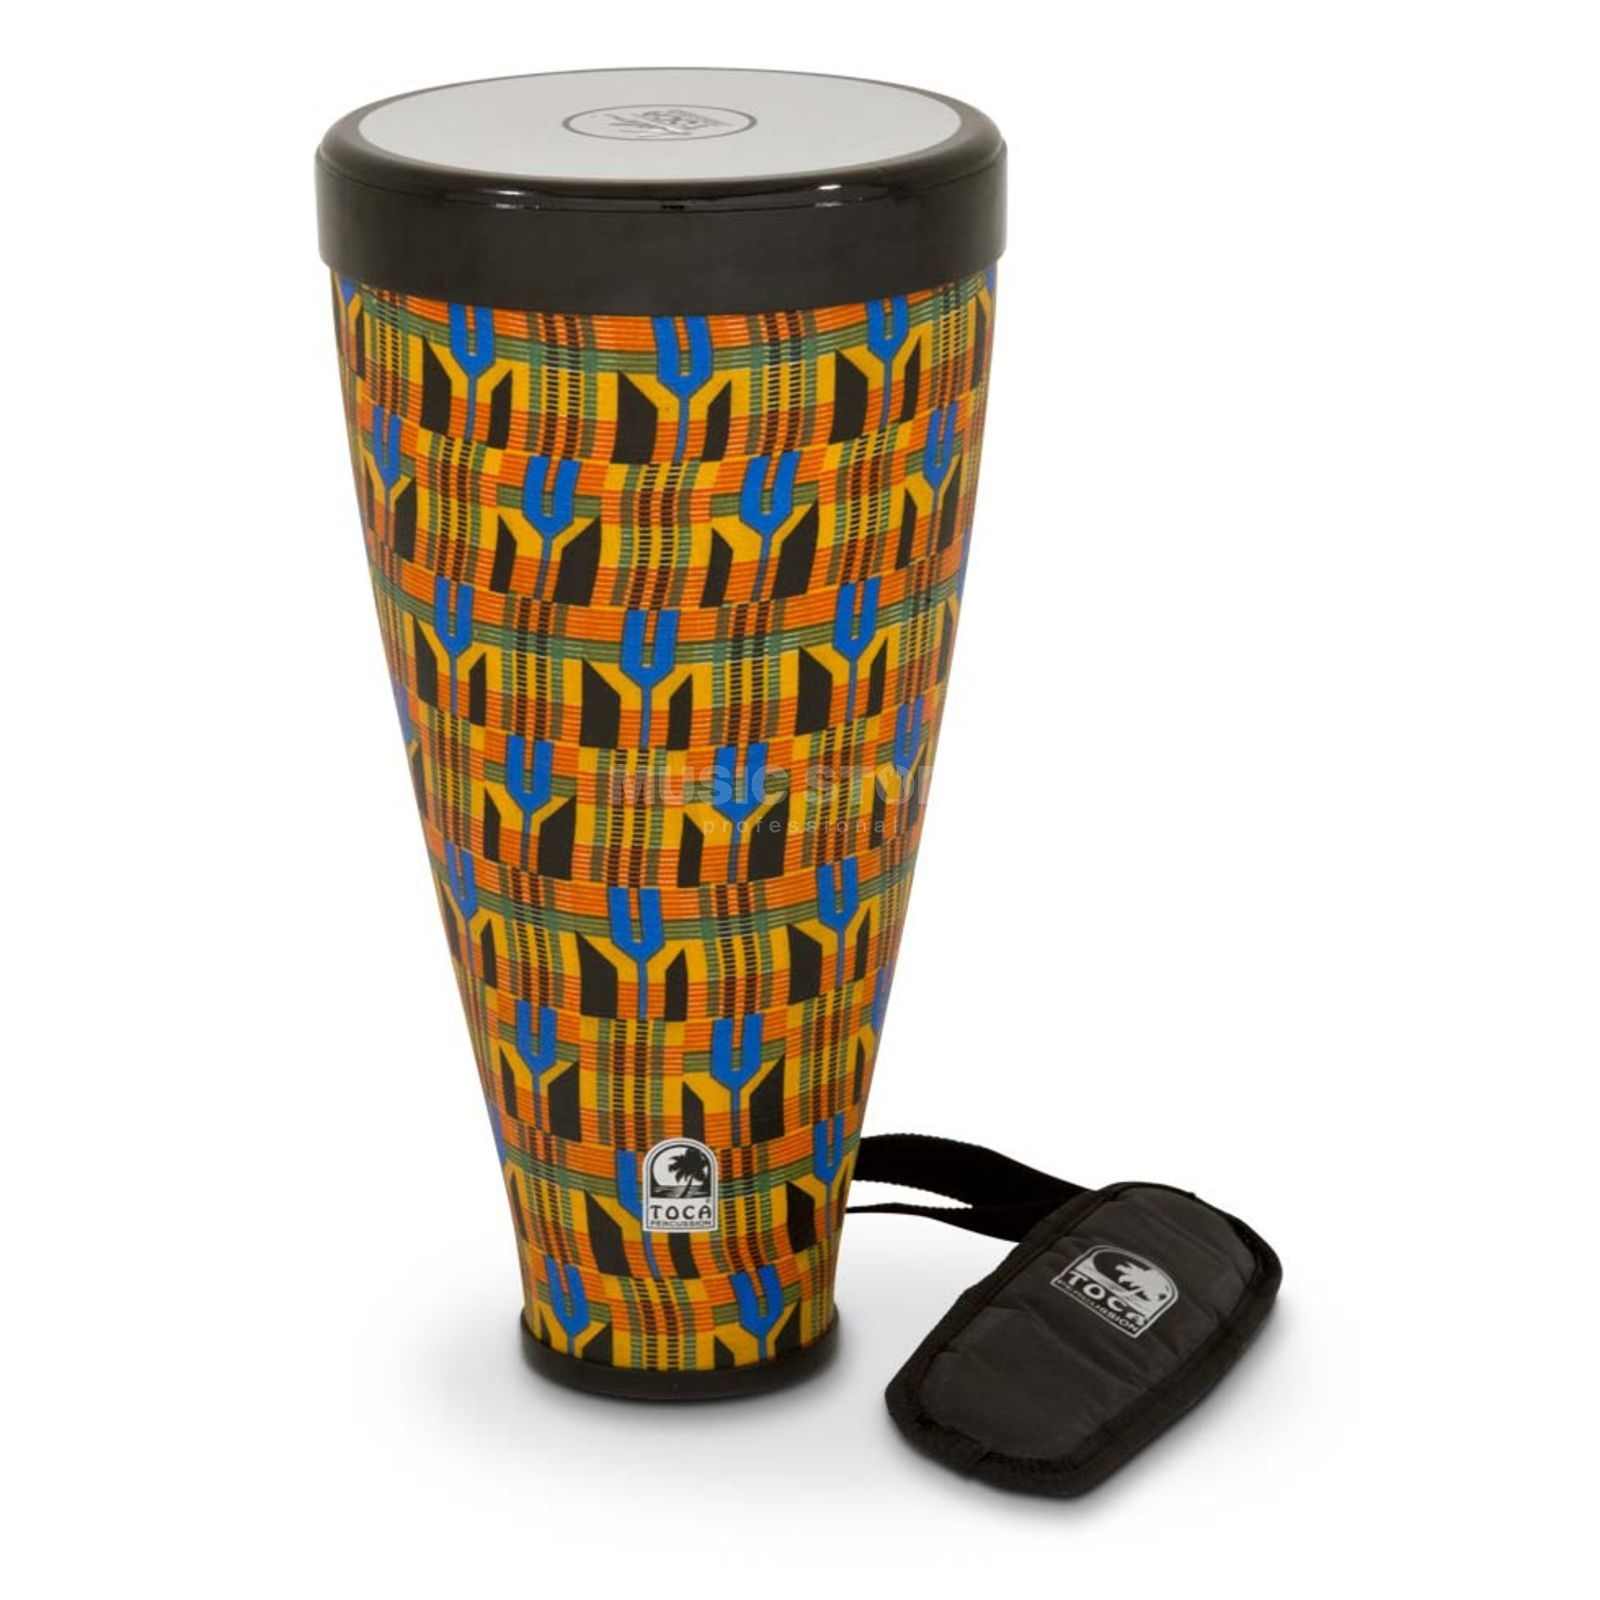 "Toca Percussion Flex Drum Junior TFLEX-JRK, 9-1/2"", Kente Cloth Produktbild"